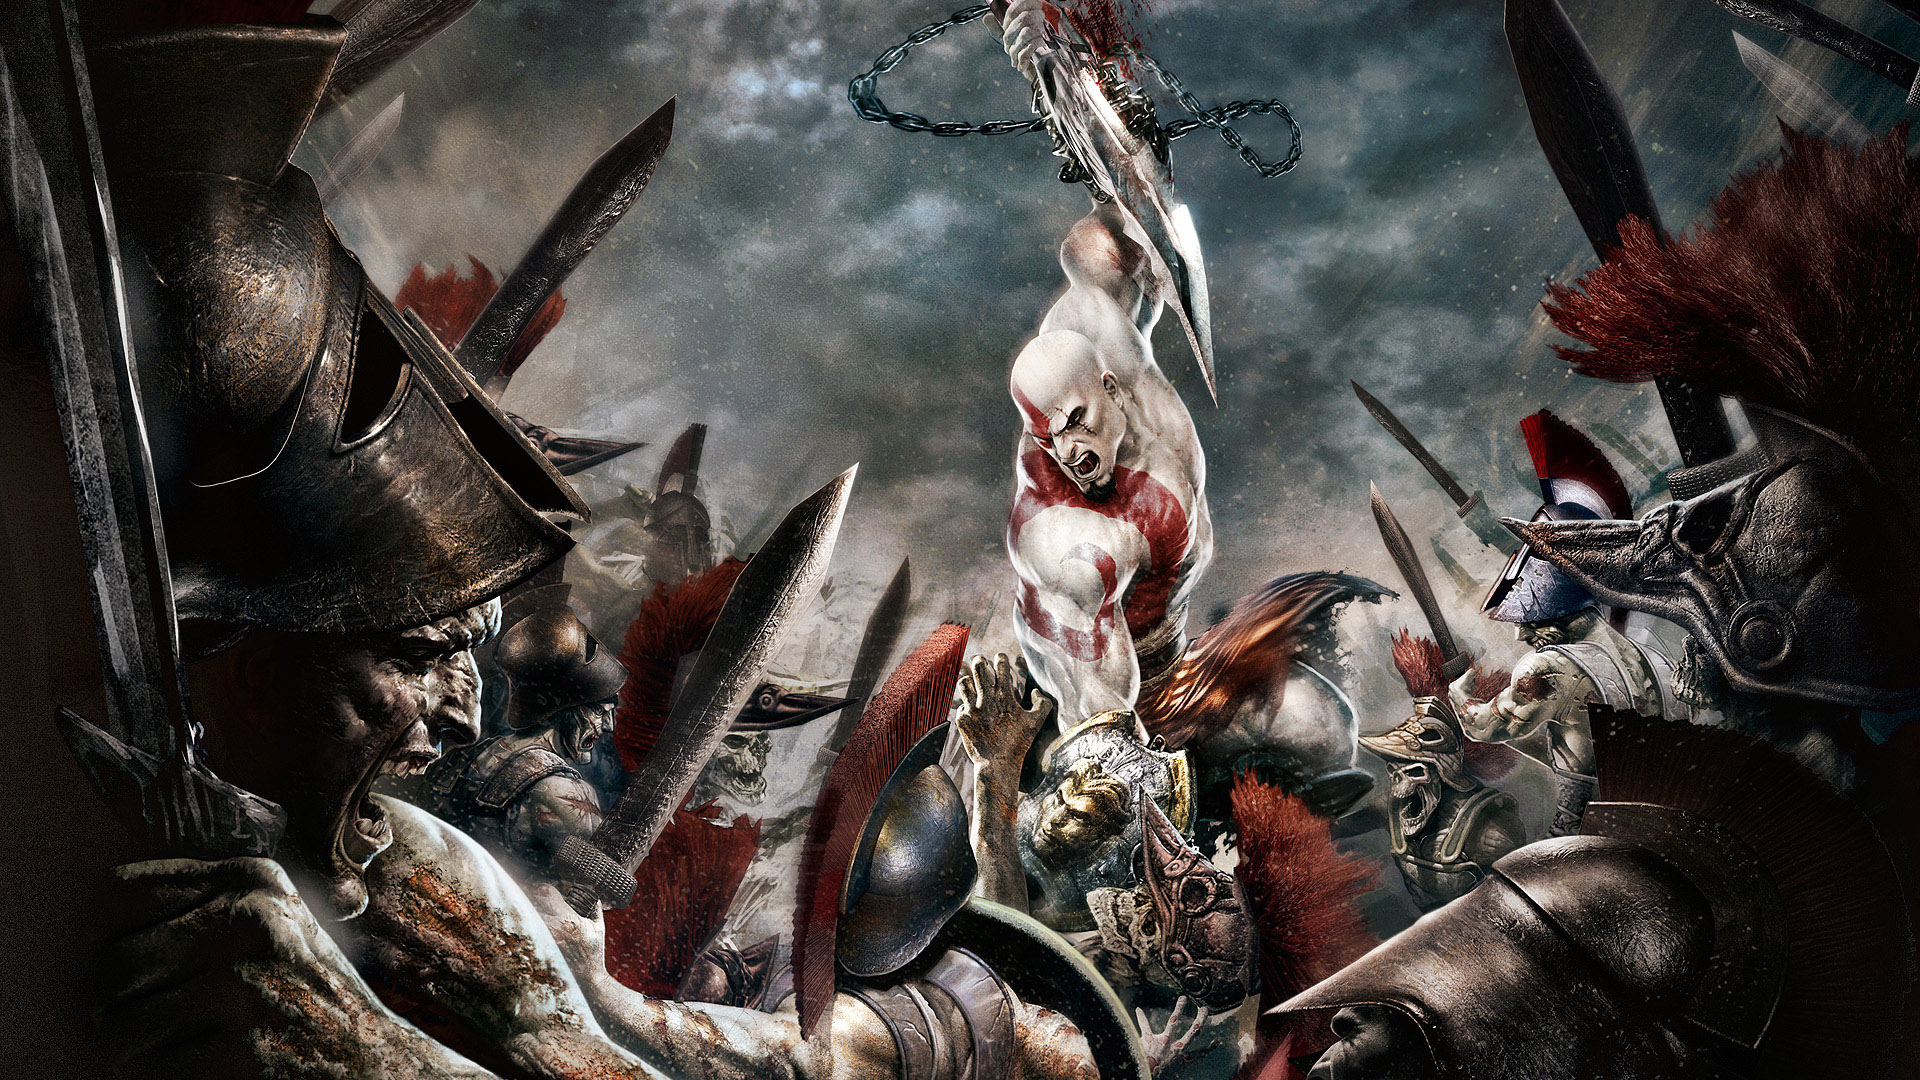 Free Download God Of War 3 Hd Wallpapers Hd Wallpapers Backgrounds